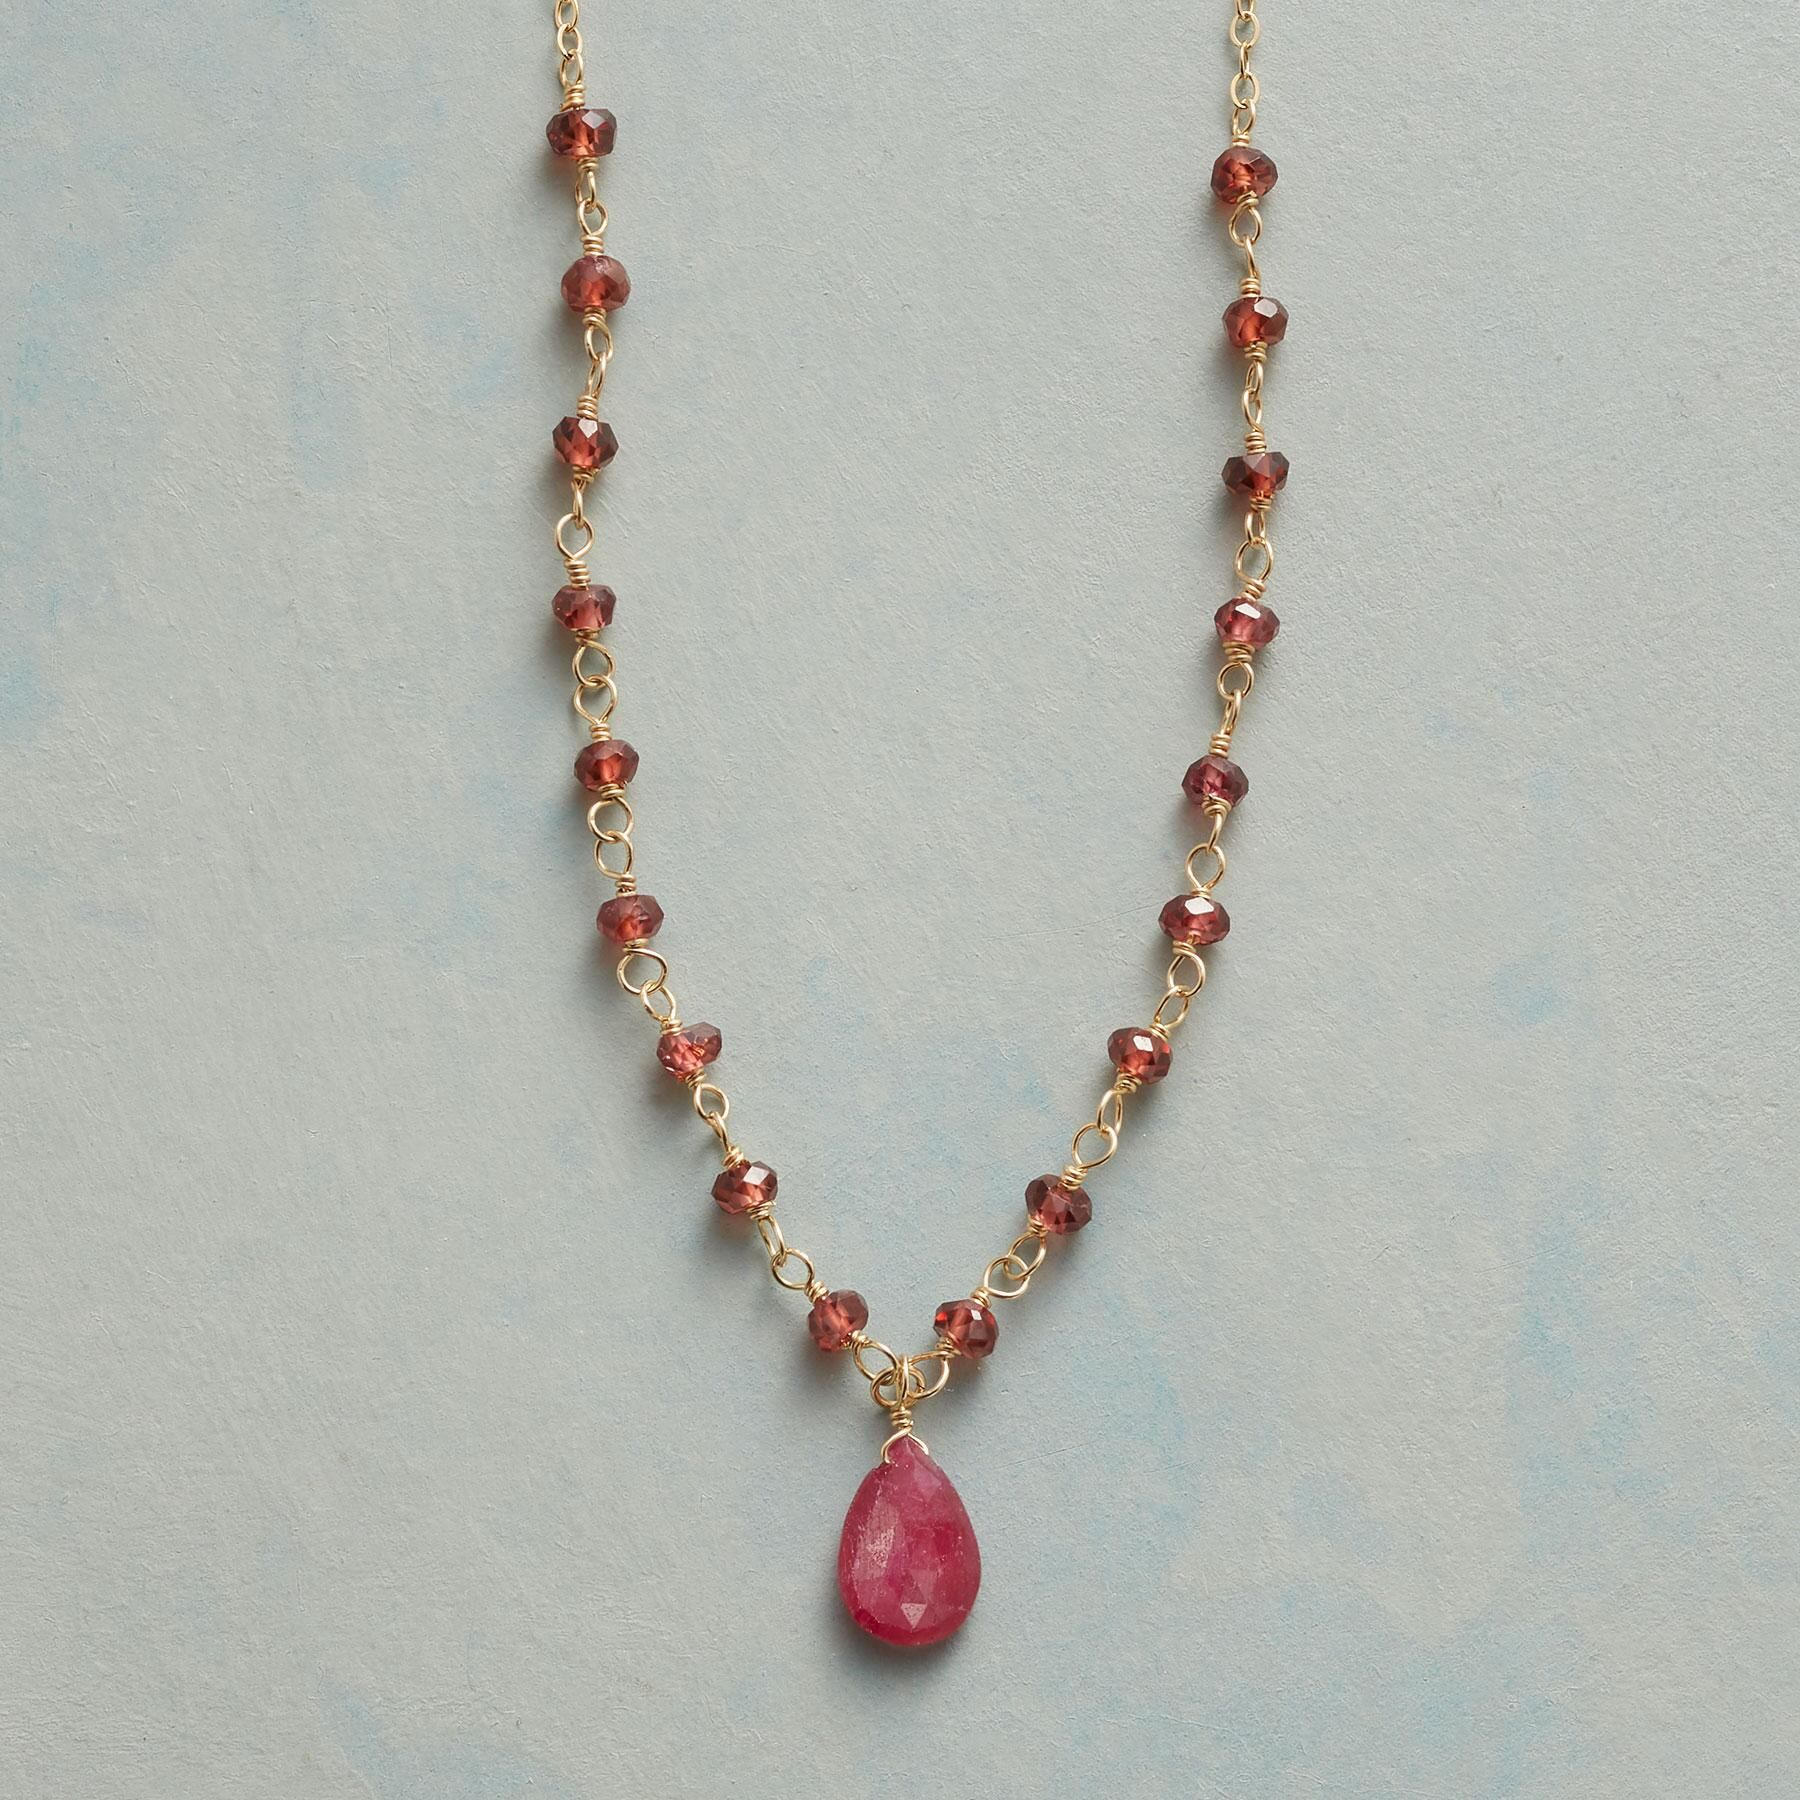 WITH GRACE NECKLACE -- Wire-wrapped by hand, petite garnets grace a ...